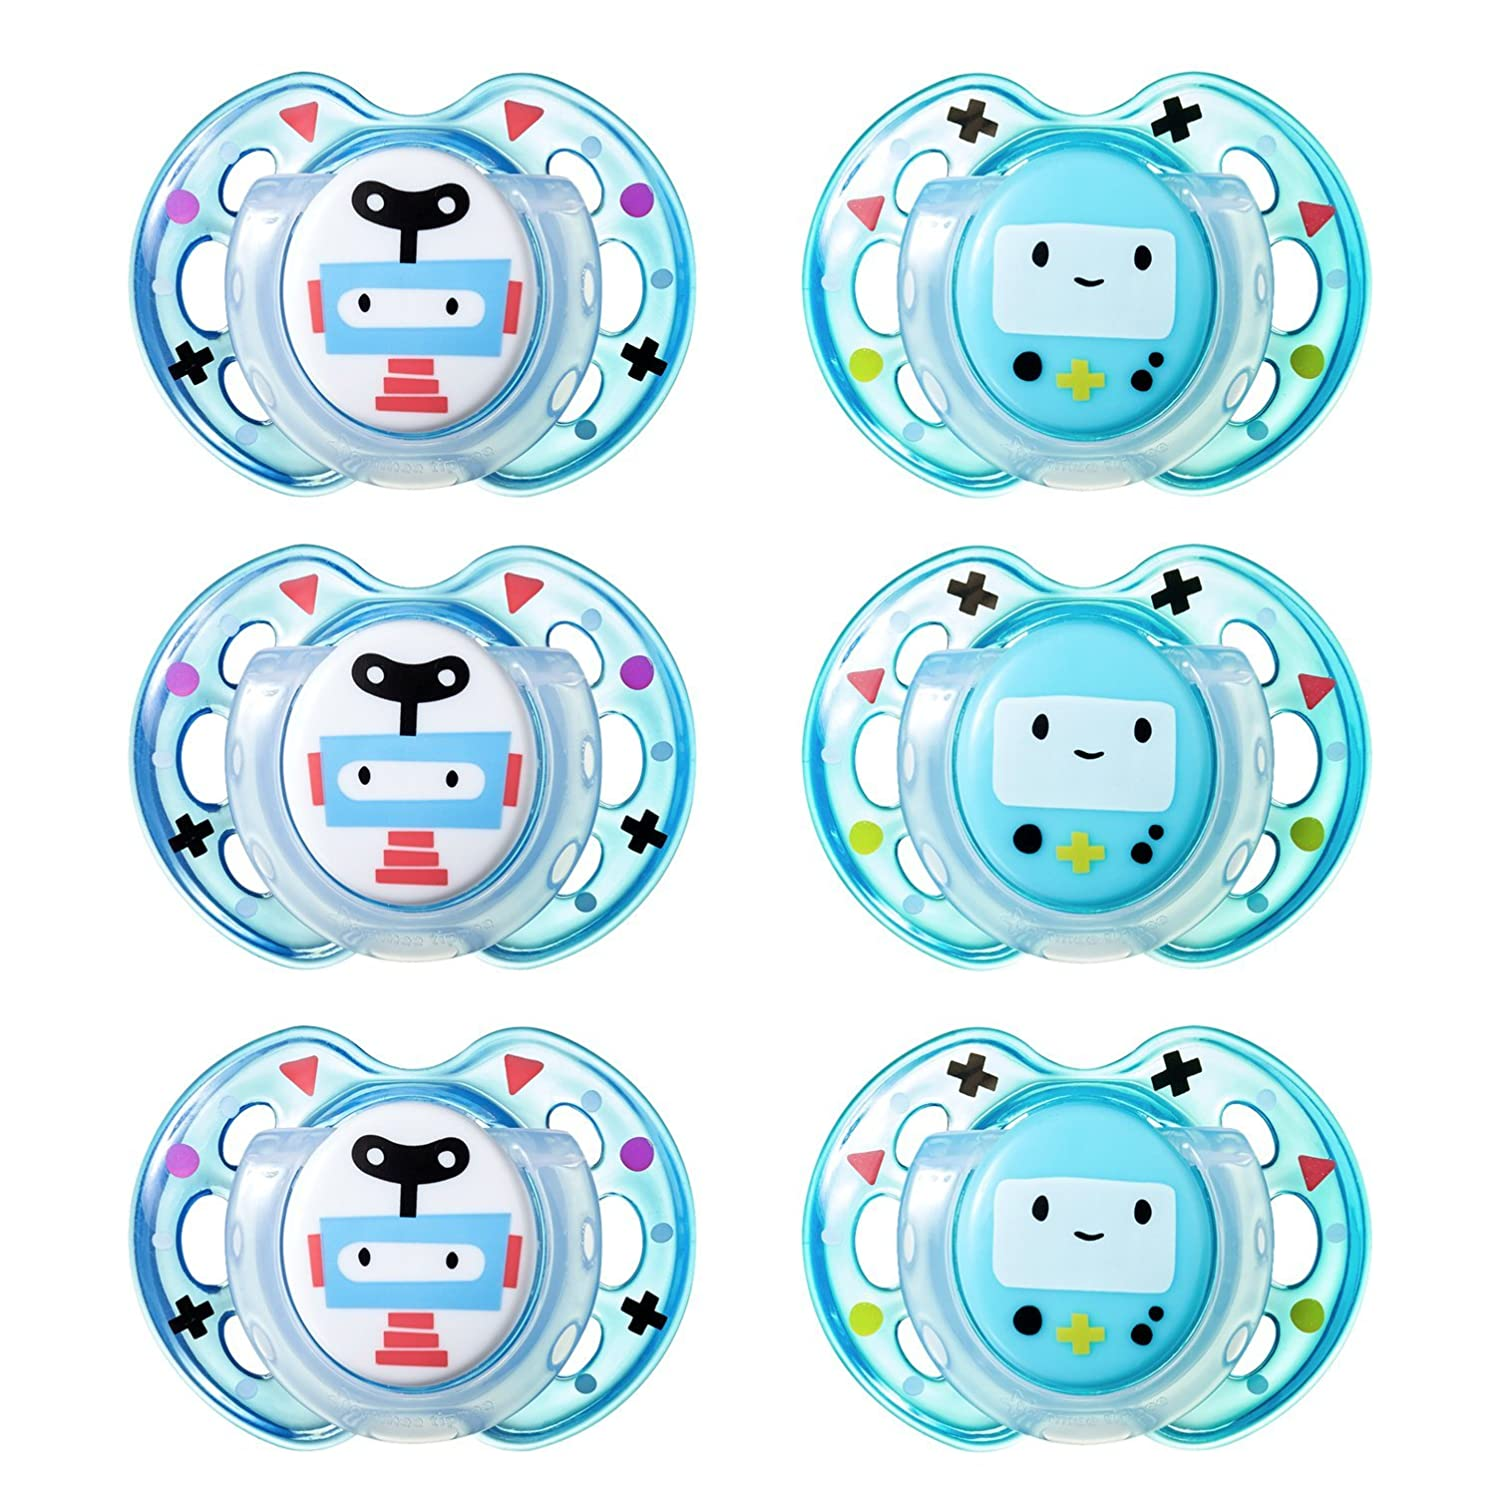 Tommee Tippee Closer to Nature Fun Style Orthodontic Baby Soothie Pacifier, 0-6 Months - Boy, 6 Pack